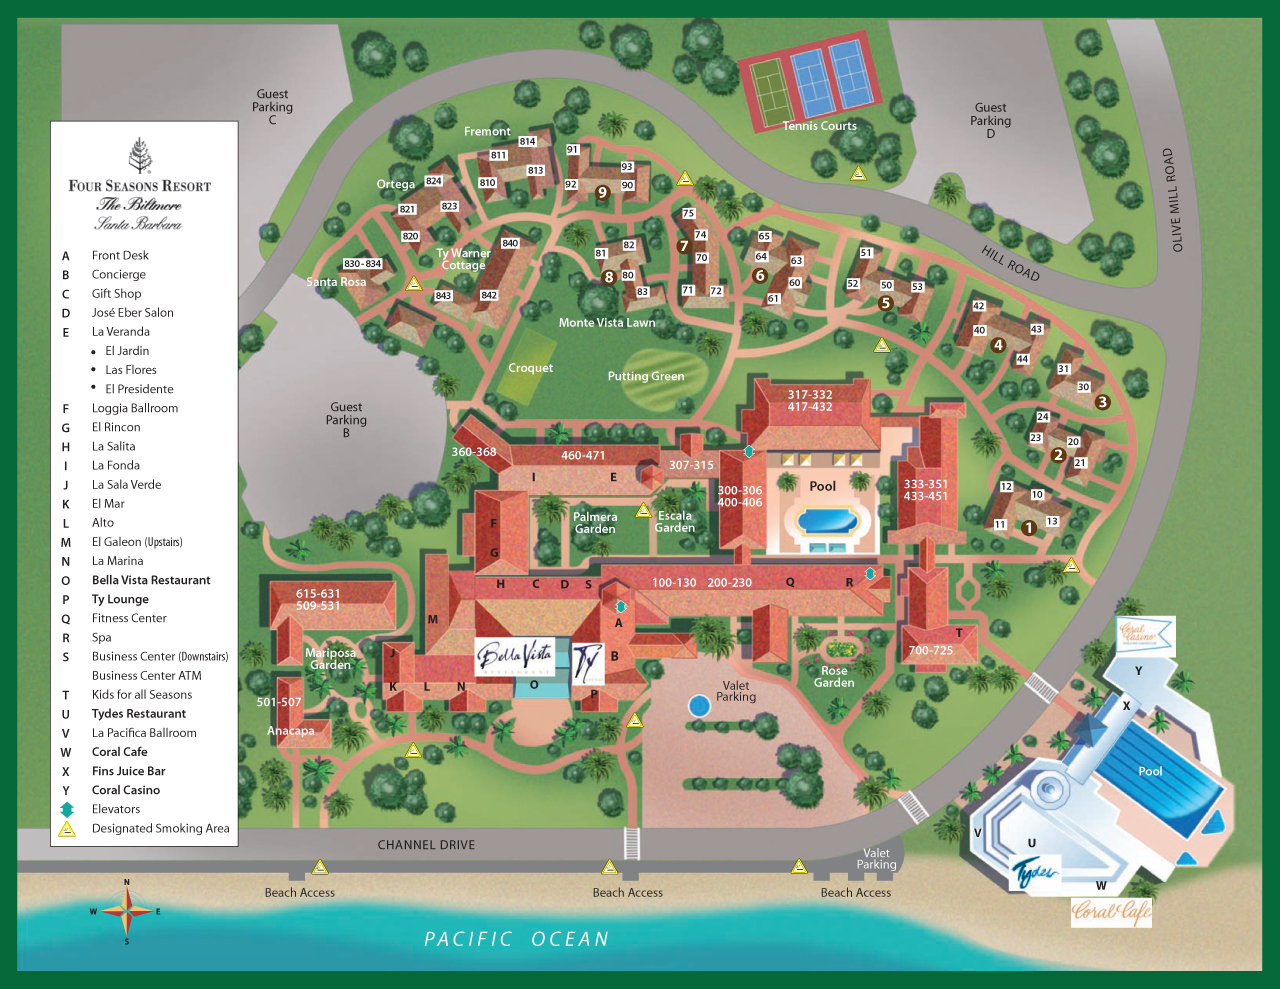 Santa Barbara Resort Map – Santa Barbara Tourist Map